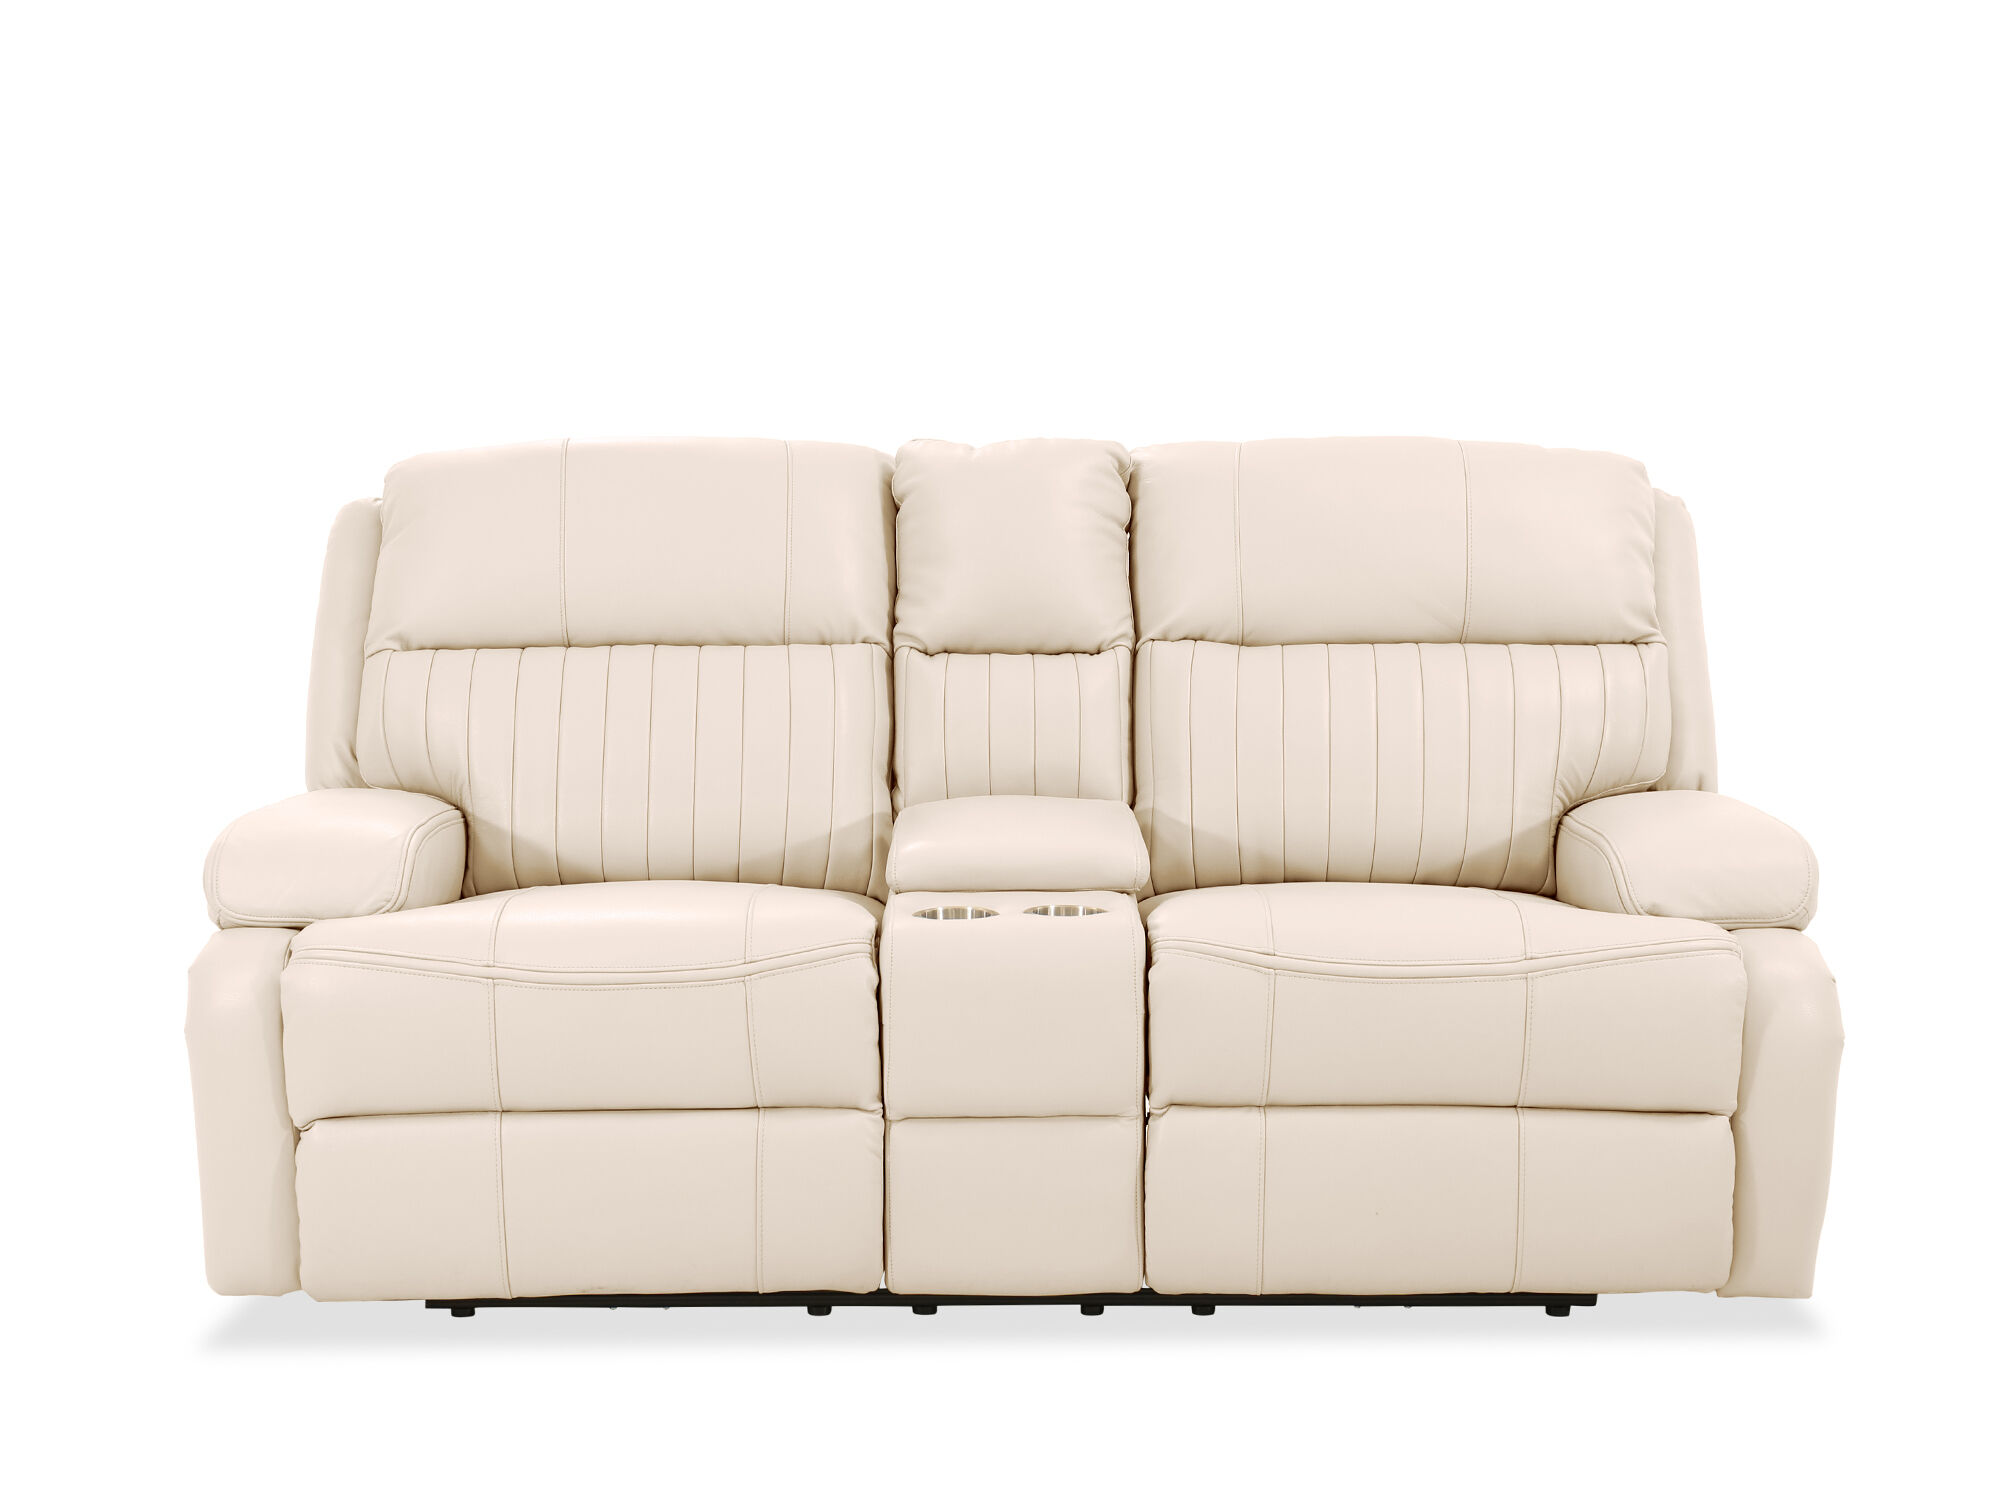 50 inch sofas sofa accent pillow covers channel pleated leather power reclining loveseat in ivory